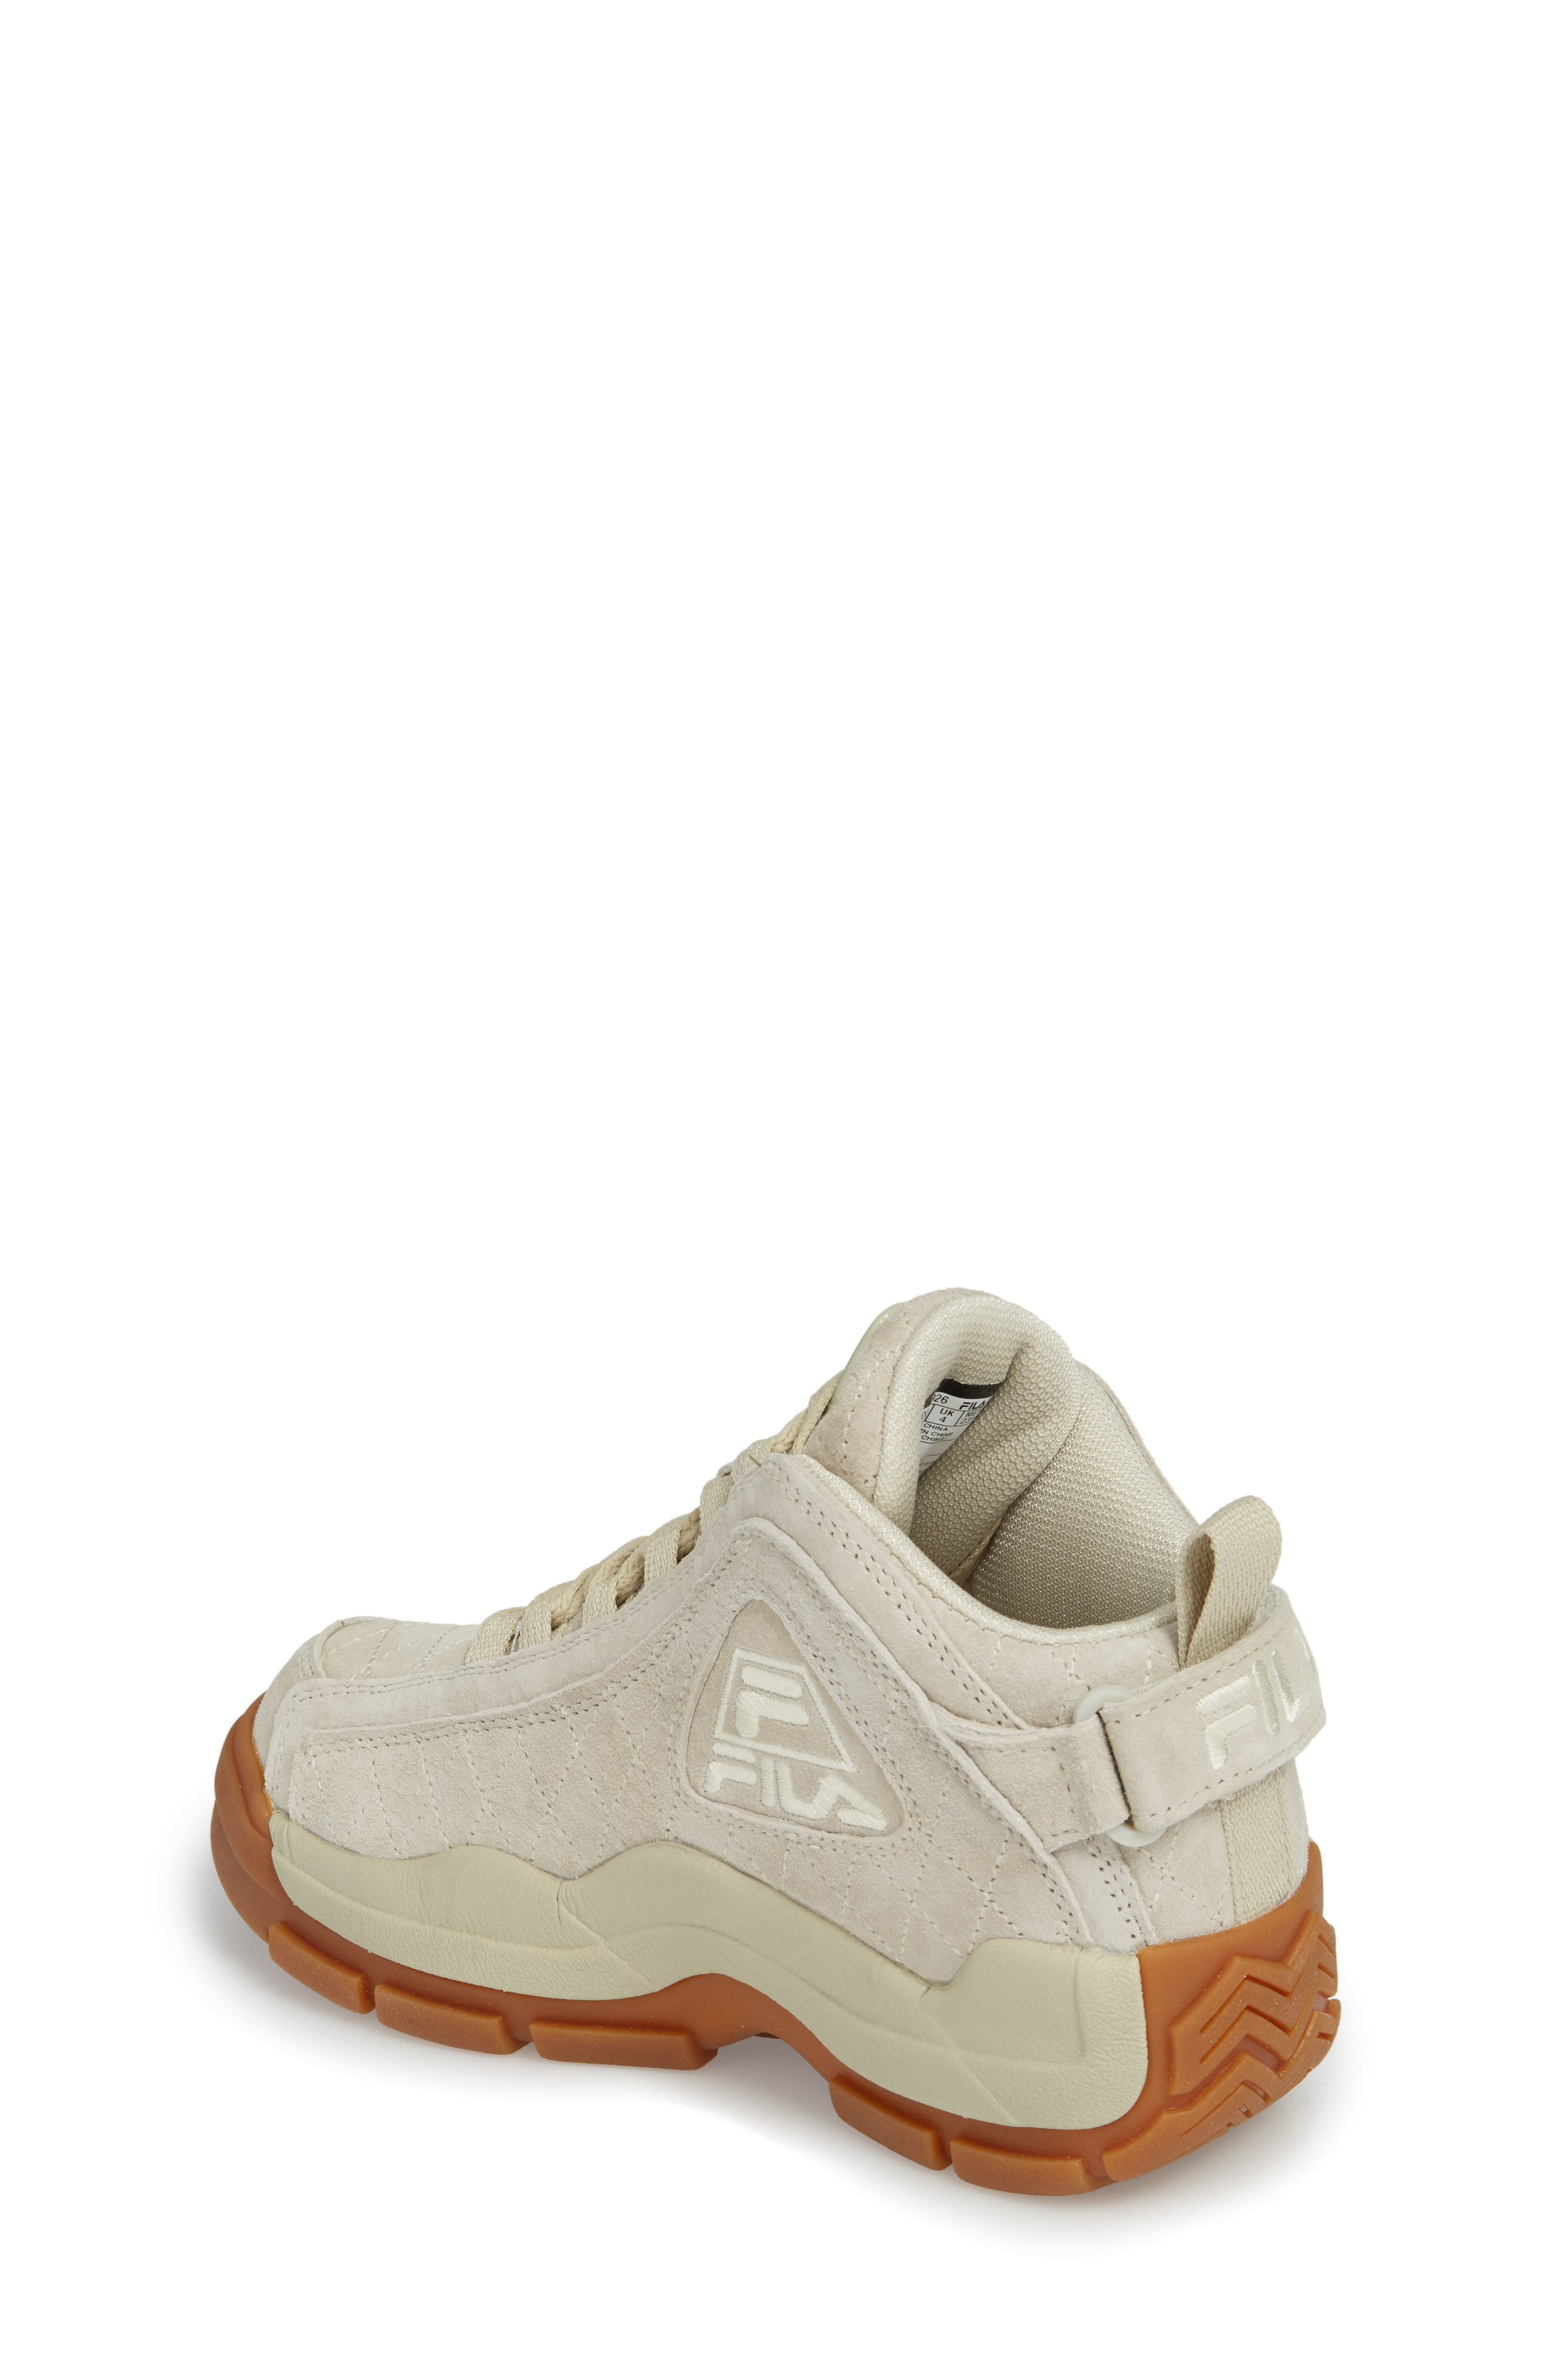 96 Quilted Mid-Top Sneaker,                             Alternate thumbnail 2, color,                             Cream/ Gum